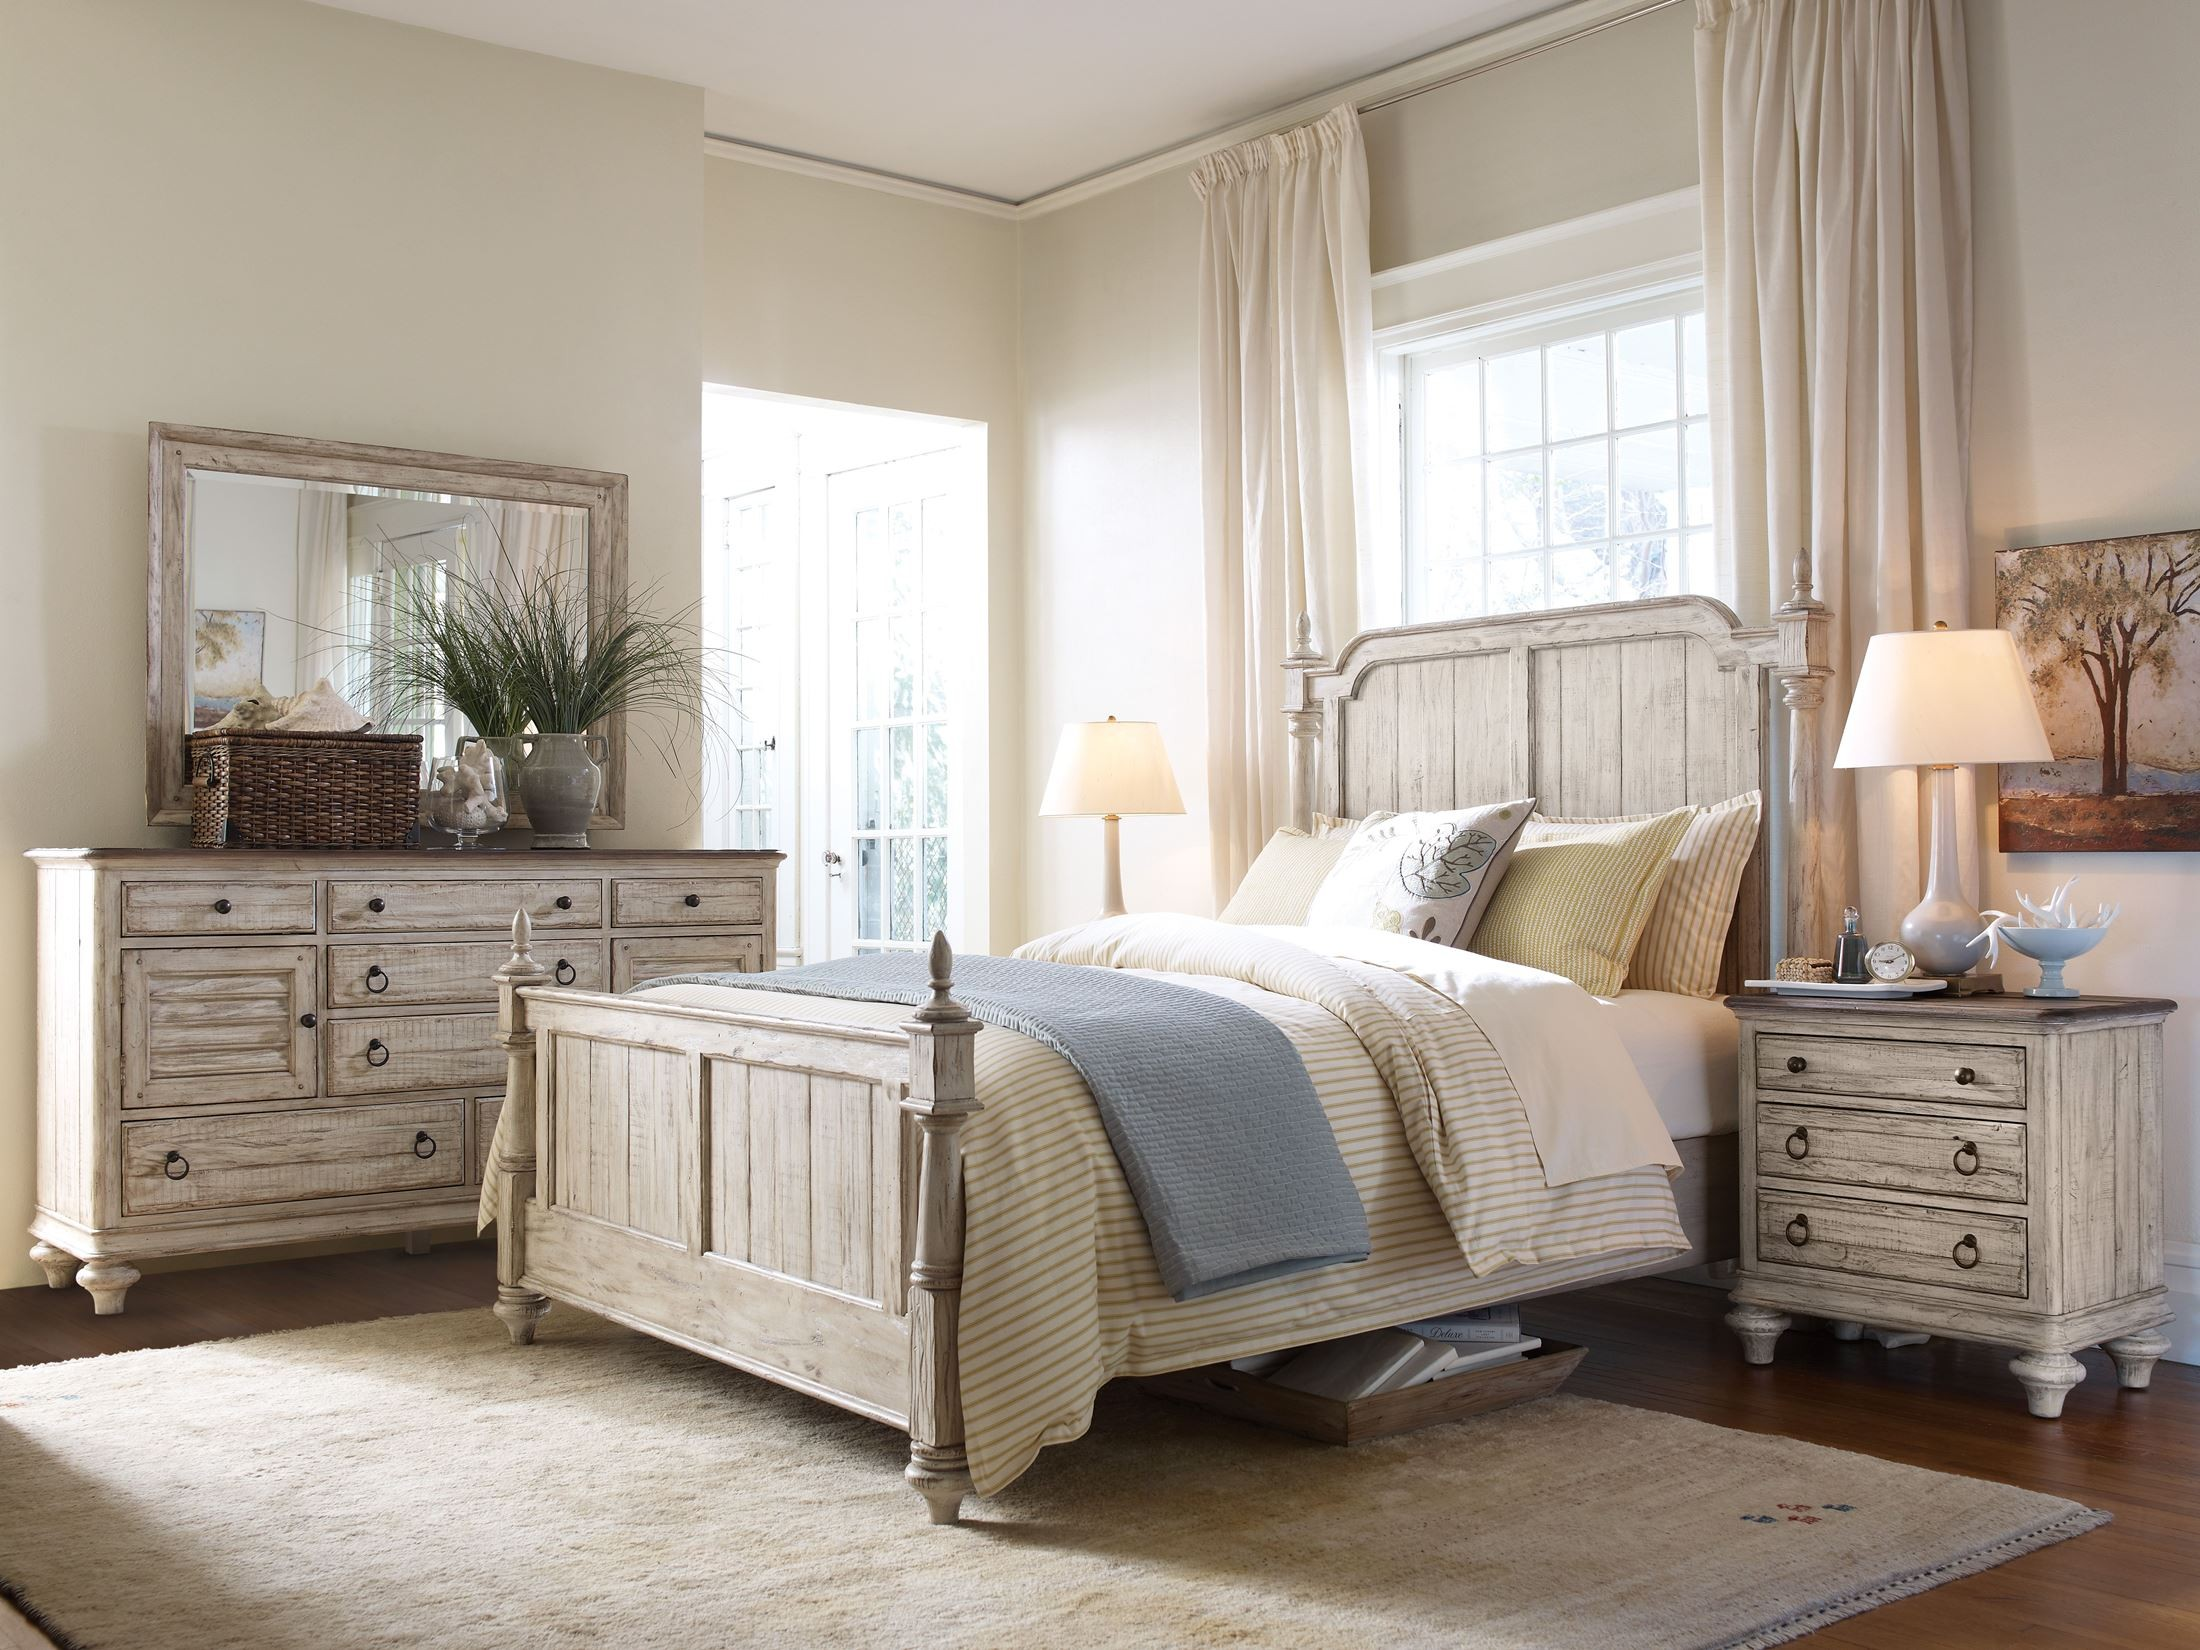 Weatherford Cornsilk Westland Bedroom Set from Kincaid 75 135P